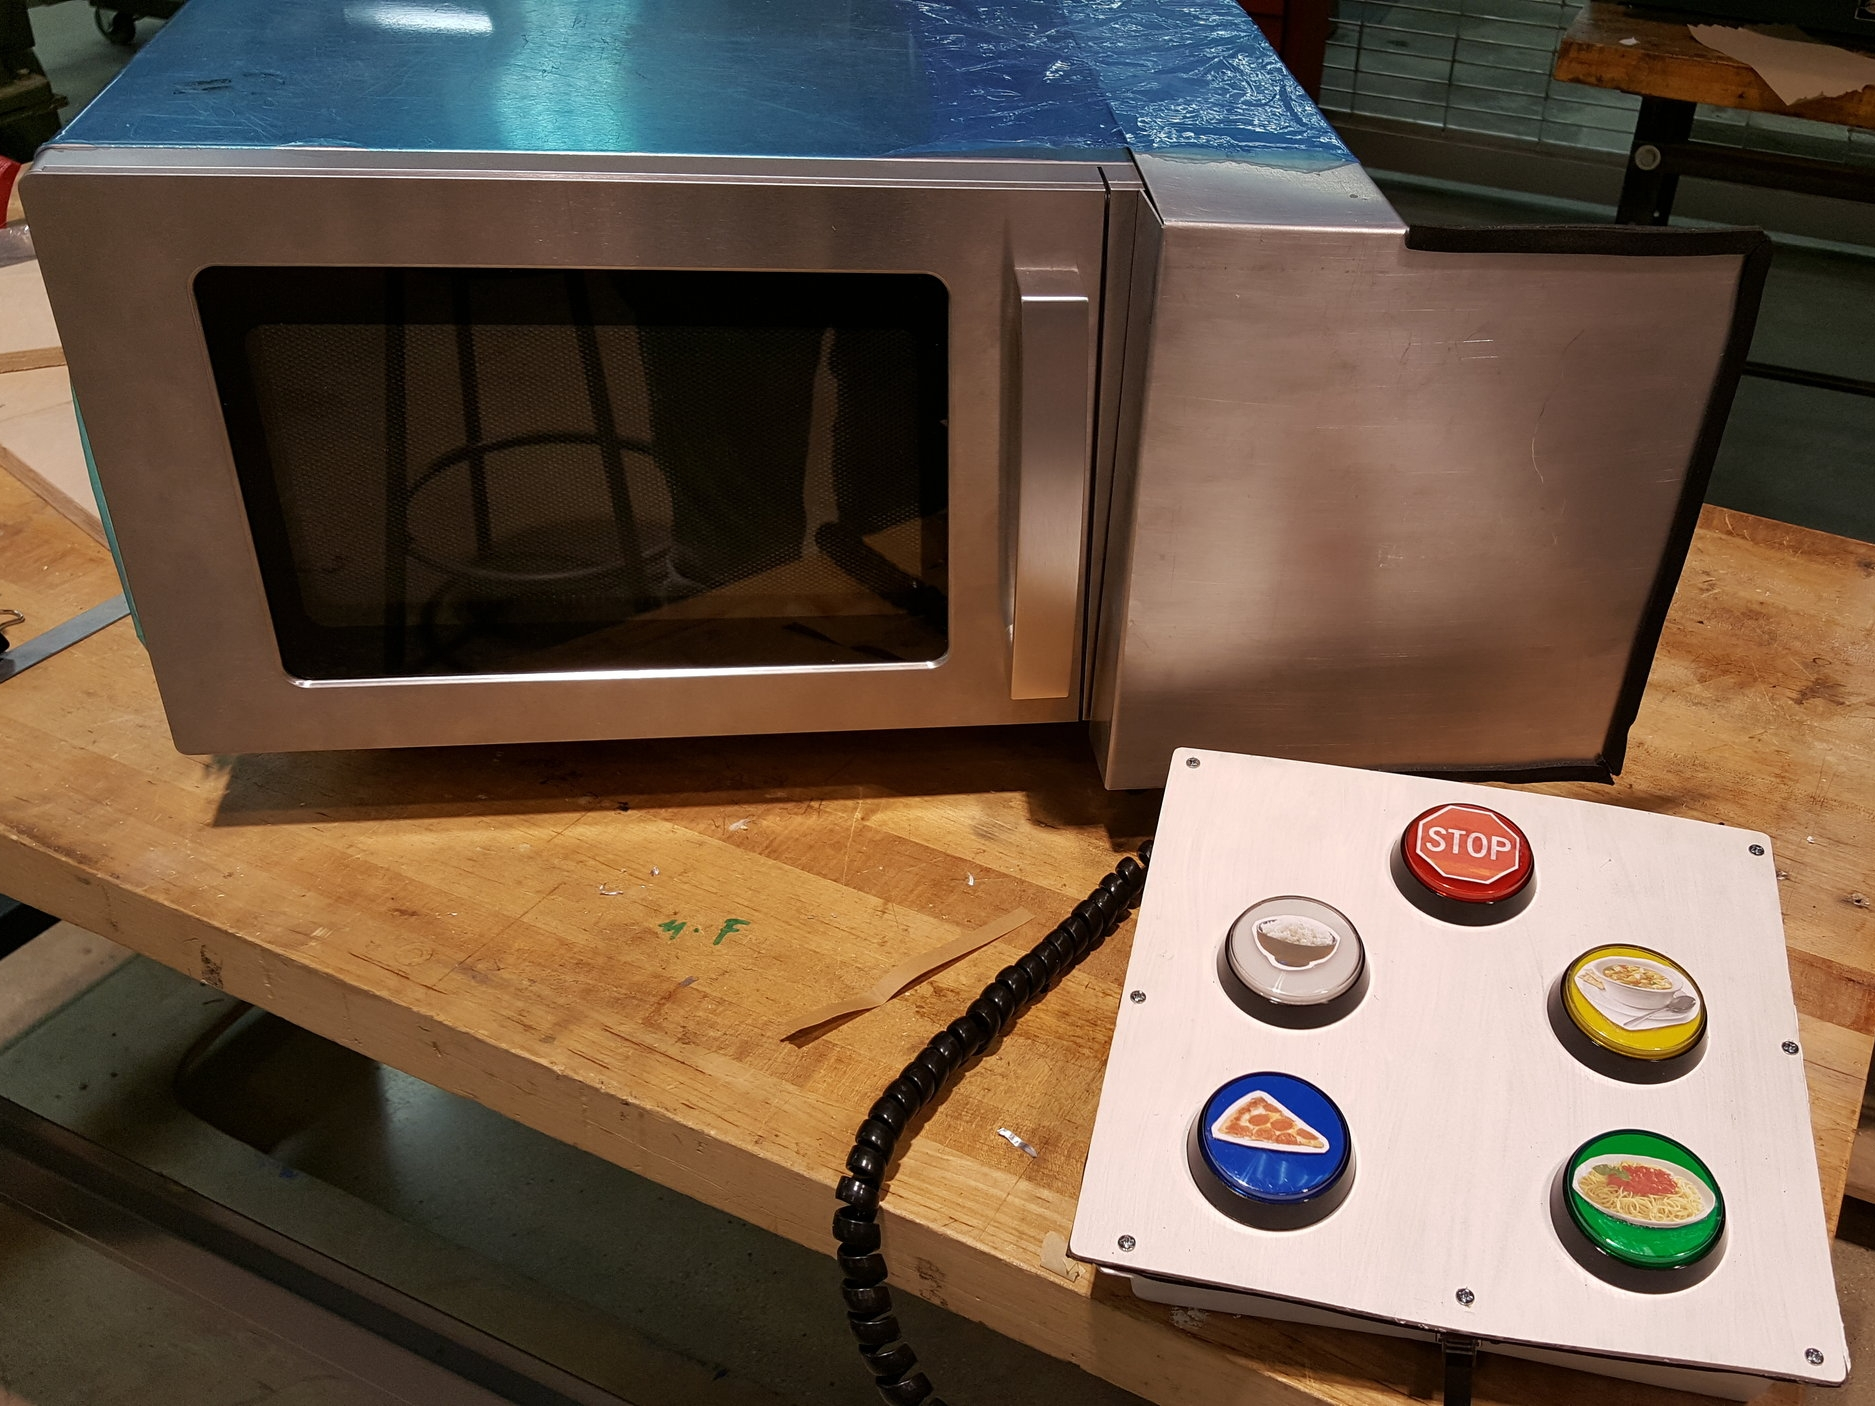 Accessible Microwave - User interface for people with disabilities